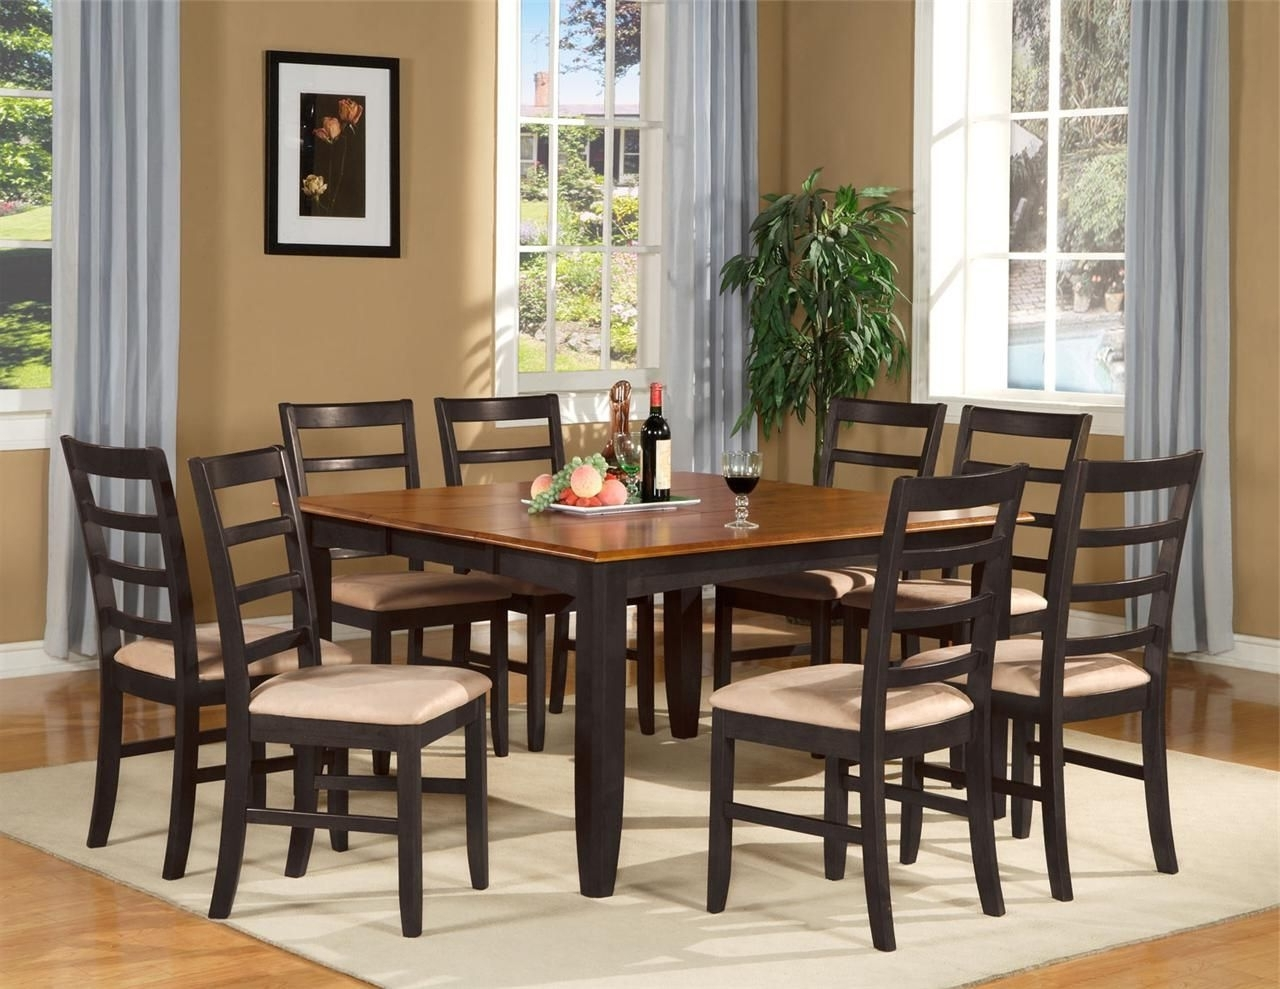 Best And Newest 9 Pc Square Dinette Dining Room Table Set And 8 Chairs (View 24 of 25)